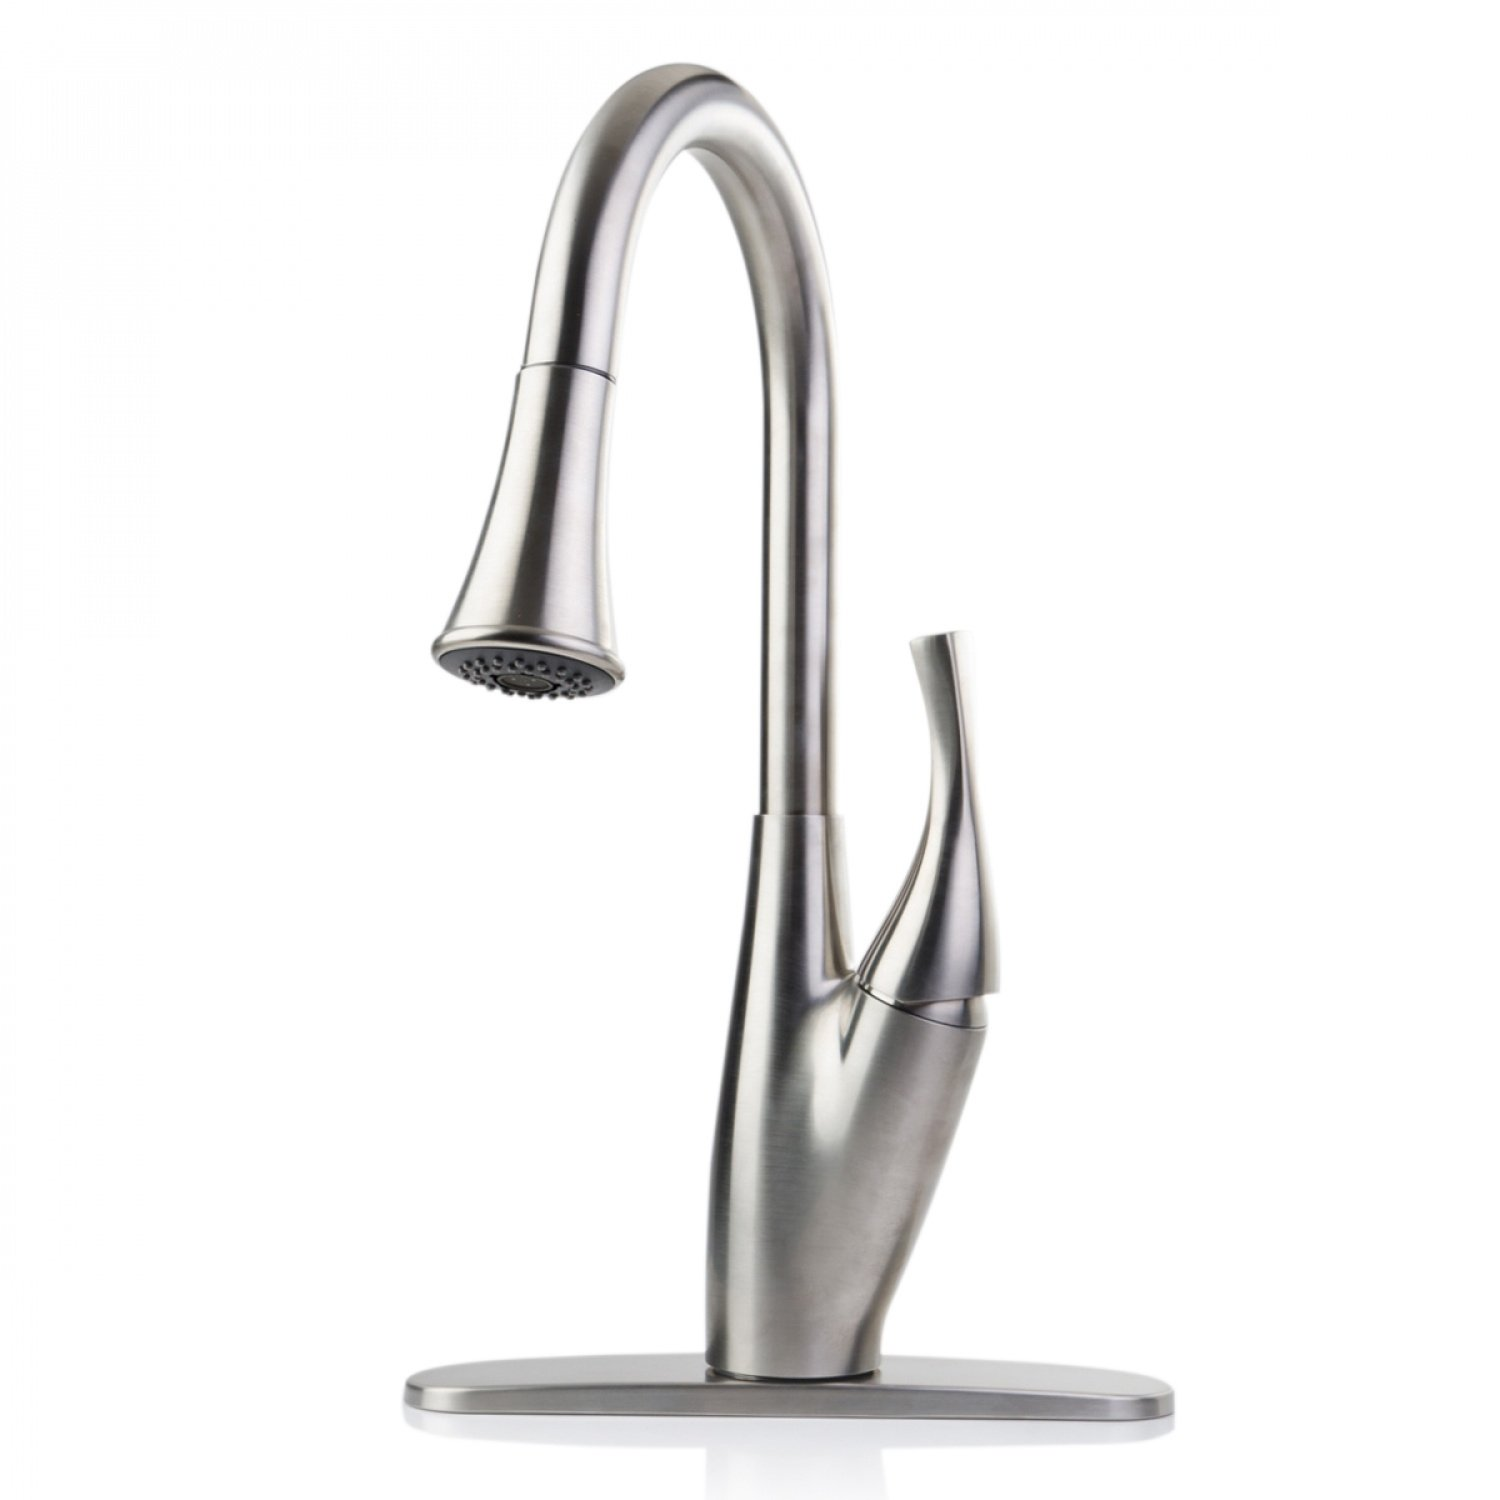 Ispring Lj01abn Single Handle Swivel Kitchen Bar Sink Faucet With